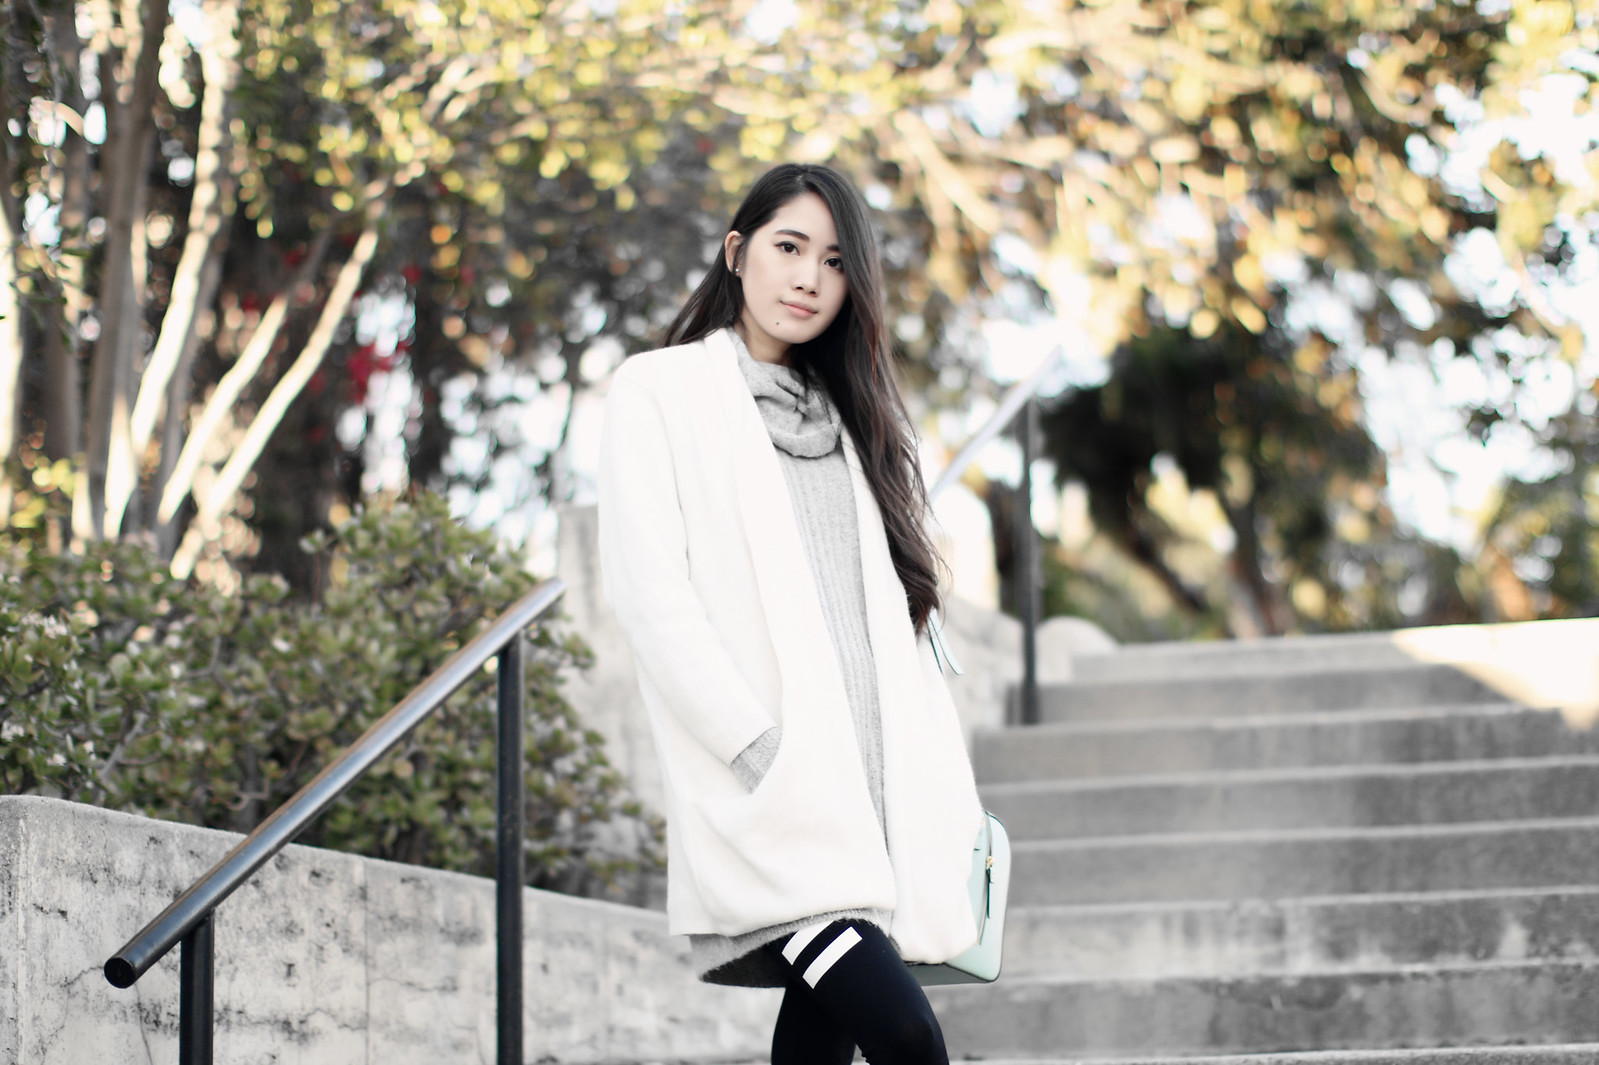 1529-ootd-fashion-style-tobi-cowl-neck-turtleneck-sweater-dress-asianfashion-koreanfashion-winterfashion-clothestoyouuu-elizabeeetht